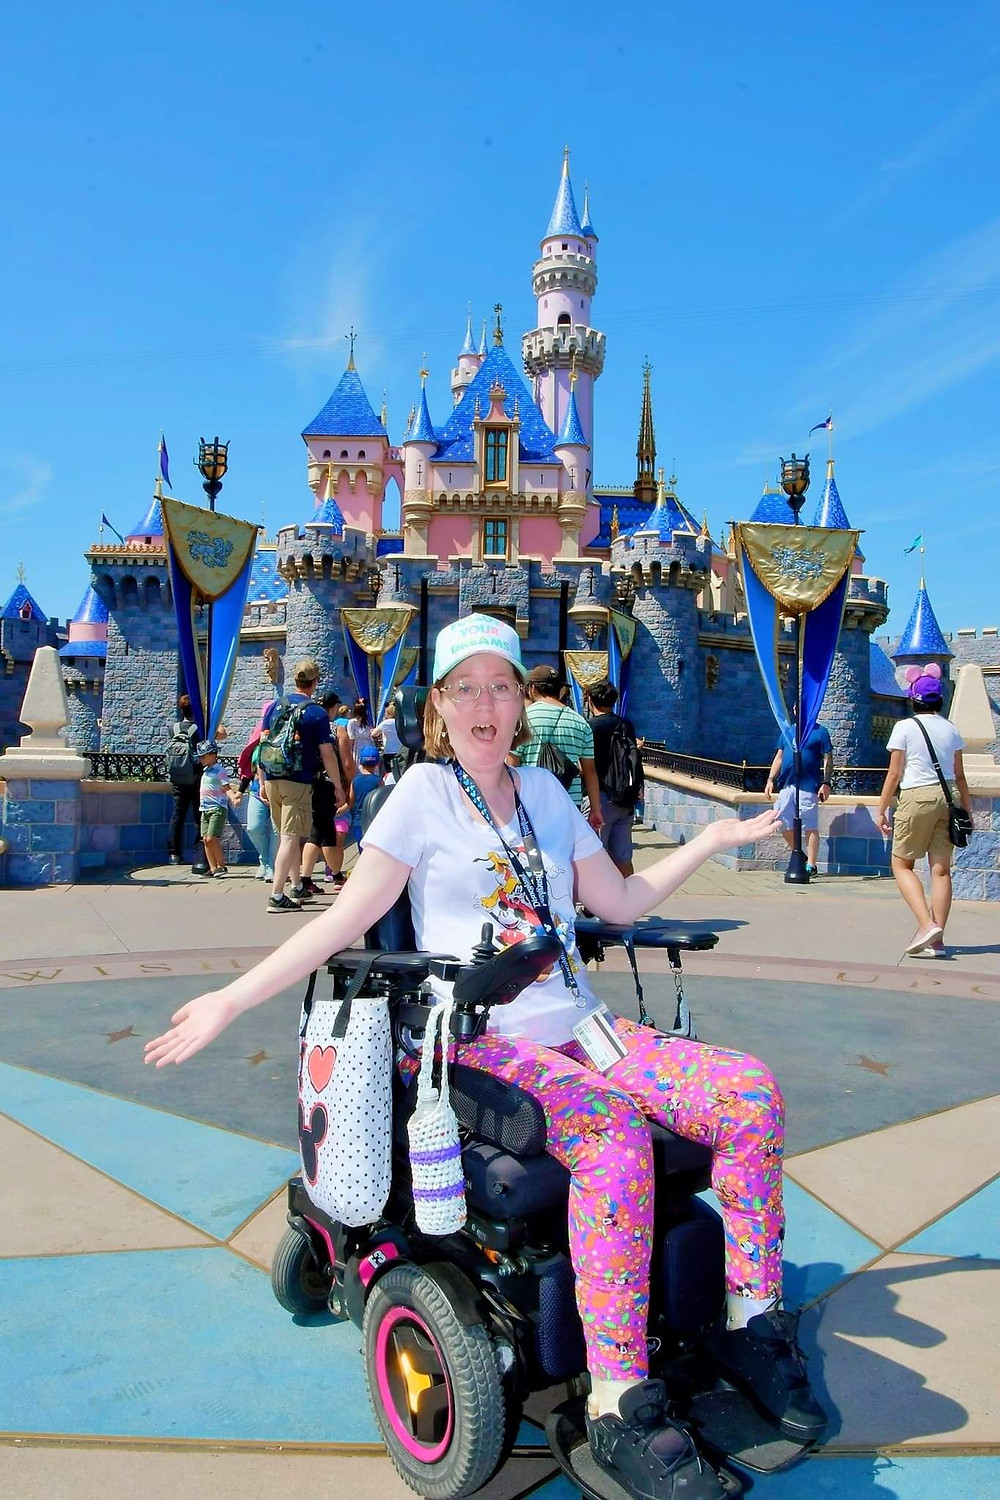 Angela in a power wheelchair posing in front of Sleeping Beauty Castle at Disneyland